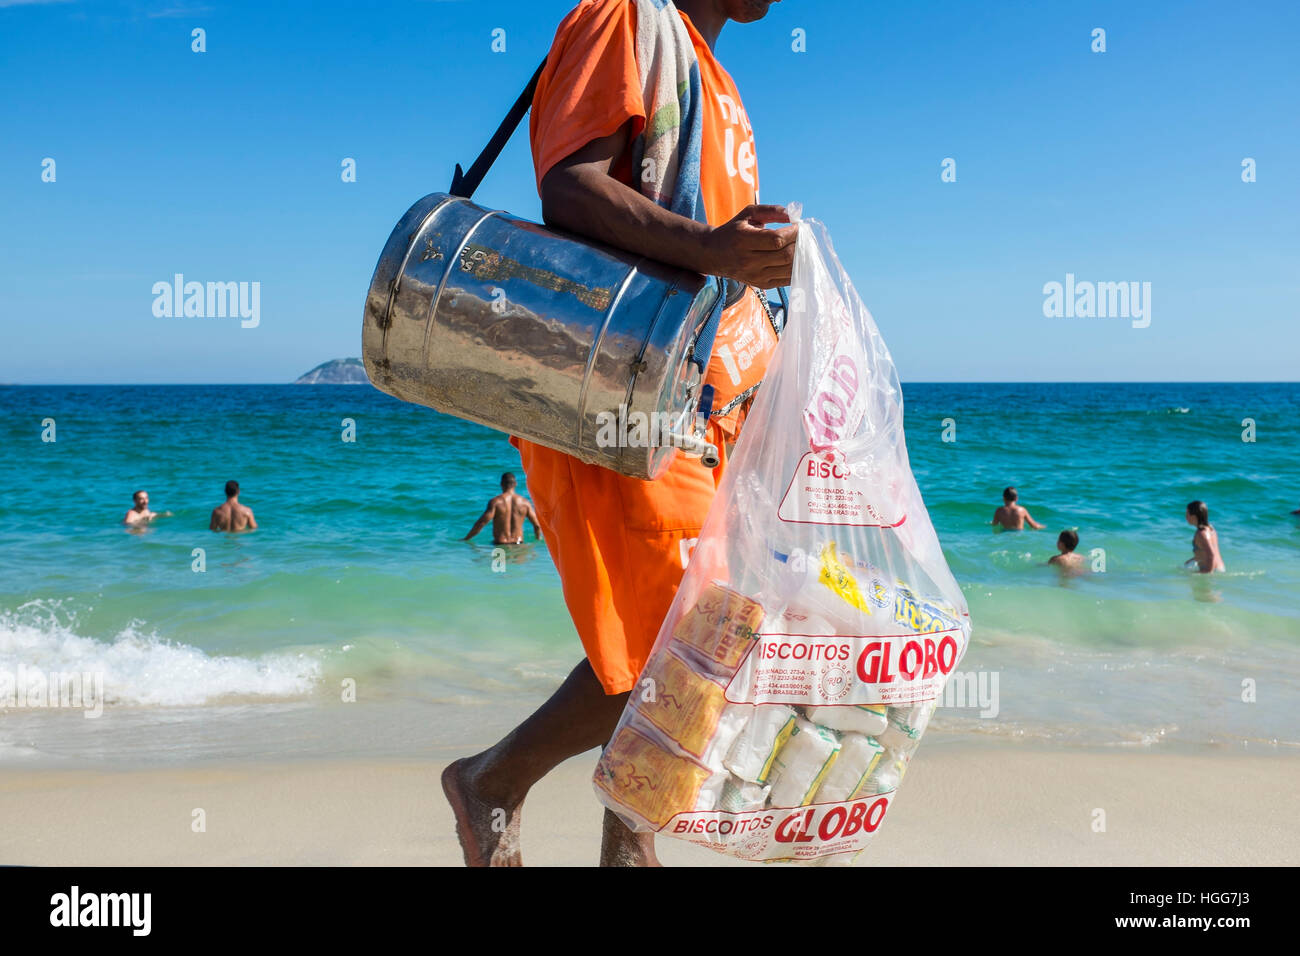 RIO DE JANEIRO - FEBRUARY 26, 2016: Beach vendor selling mate, the South American tea, and Globo brand biscuits, - Stock Image